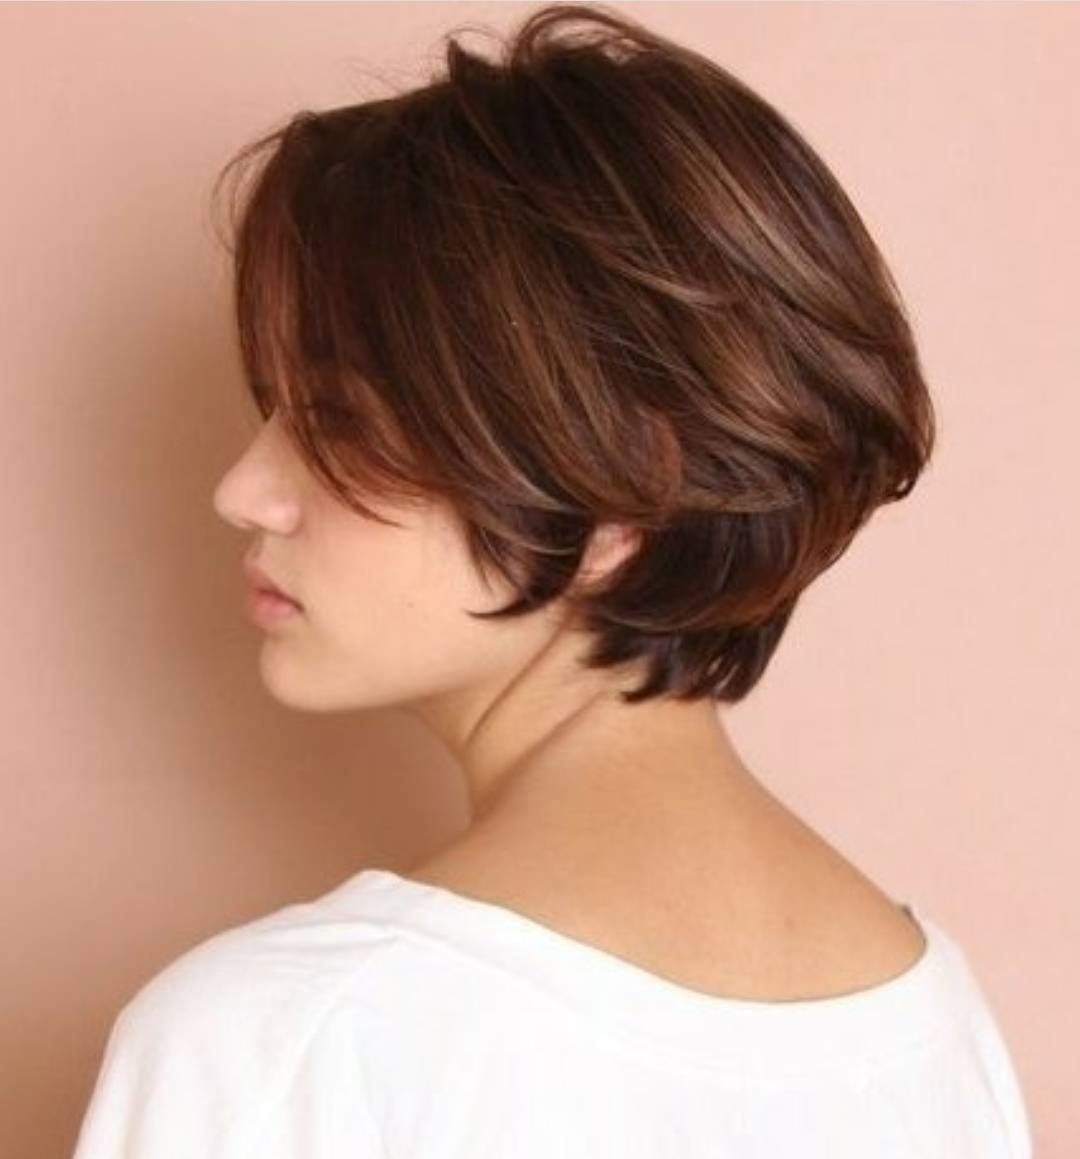 10 Chic Short Bob Haircuts That Balance Your Face Shape